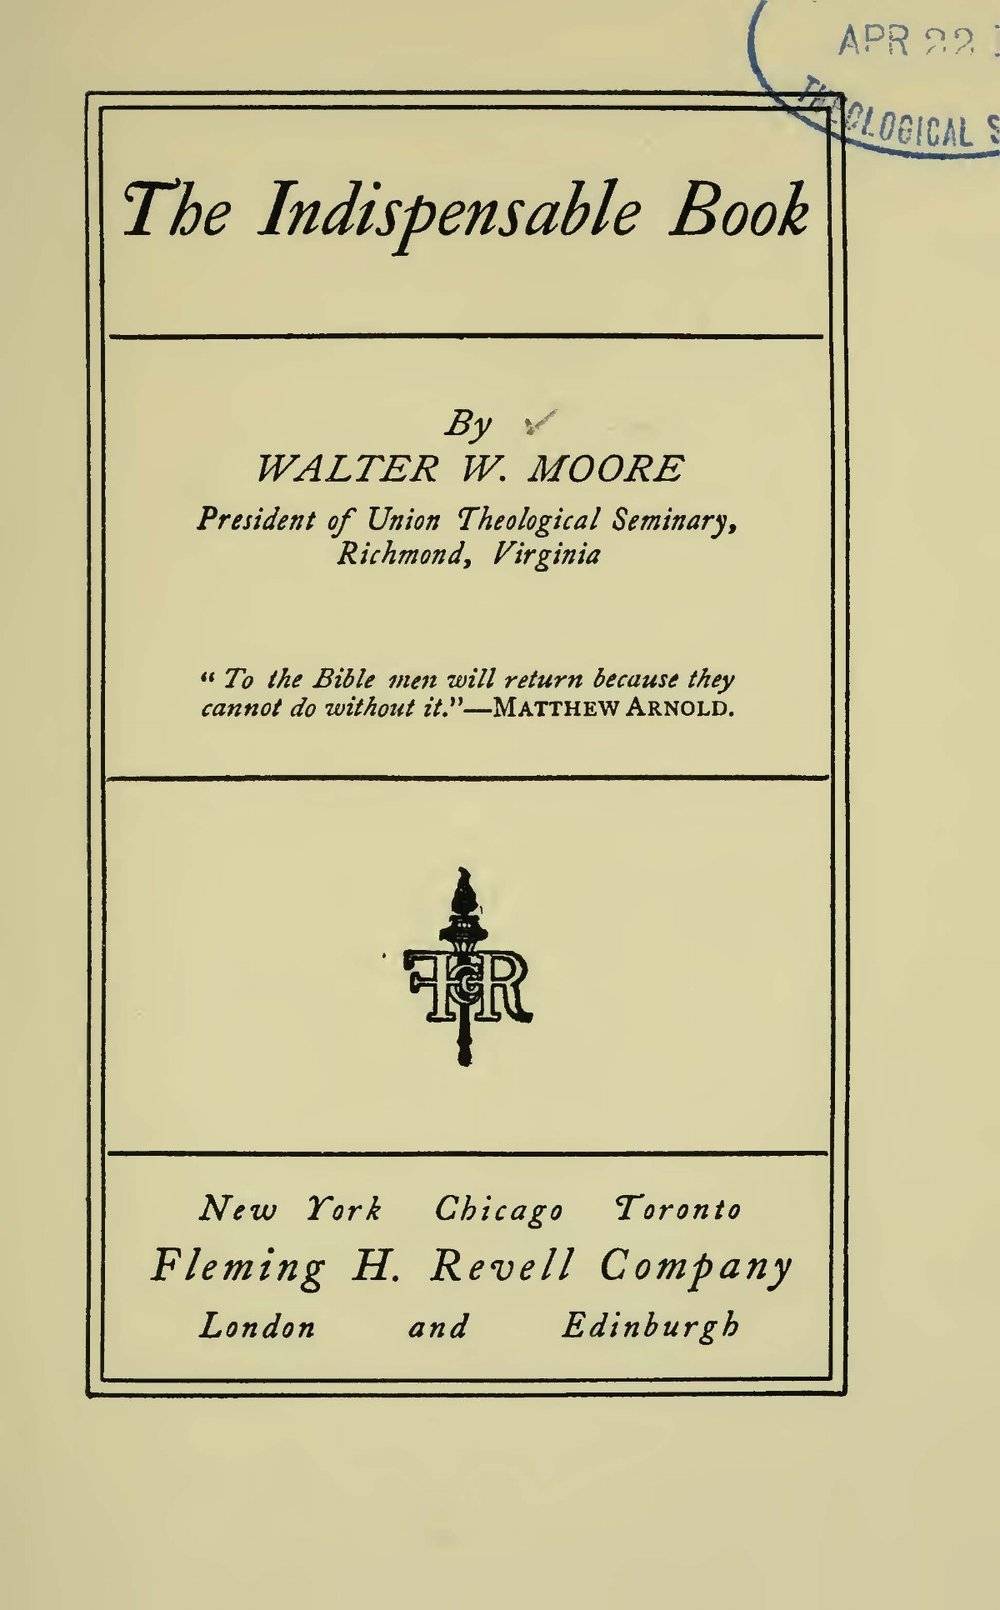 Moore, Walter William, The Indispensible Book Title Page.jpg